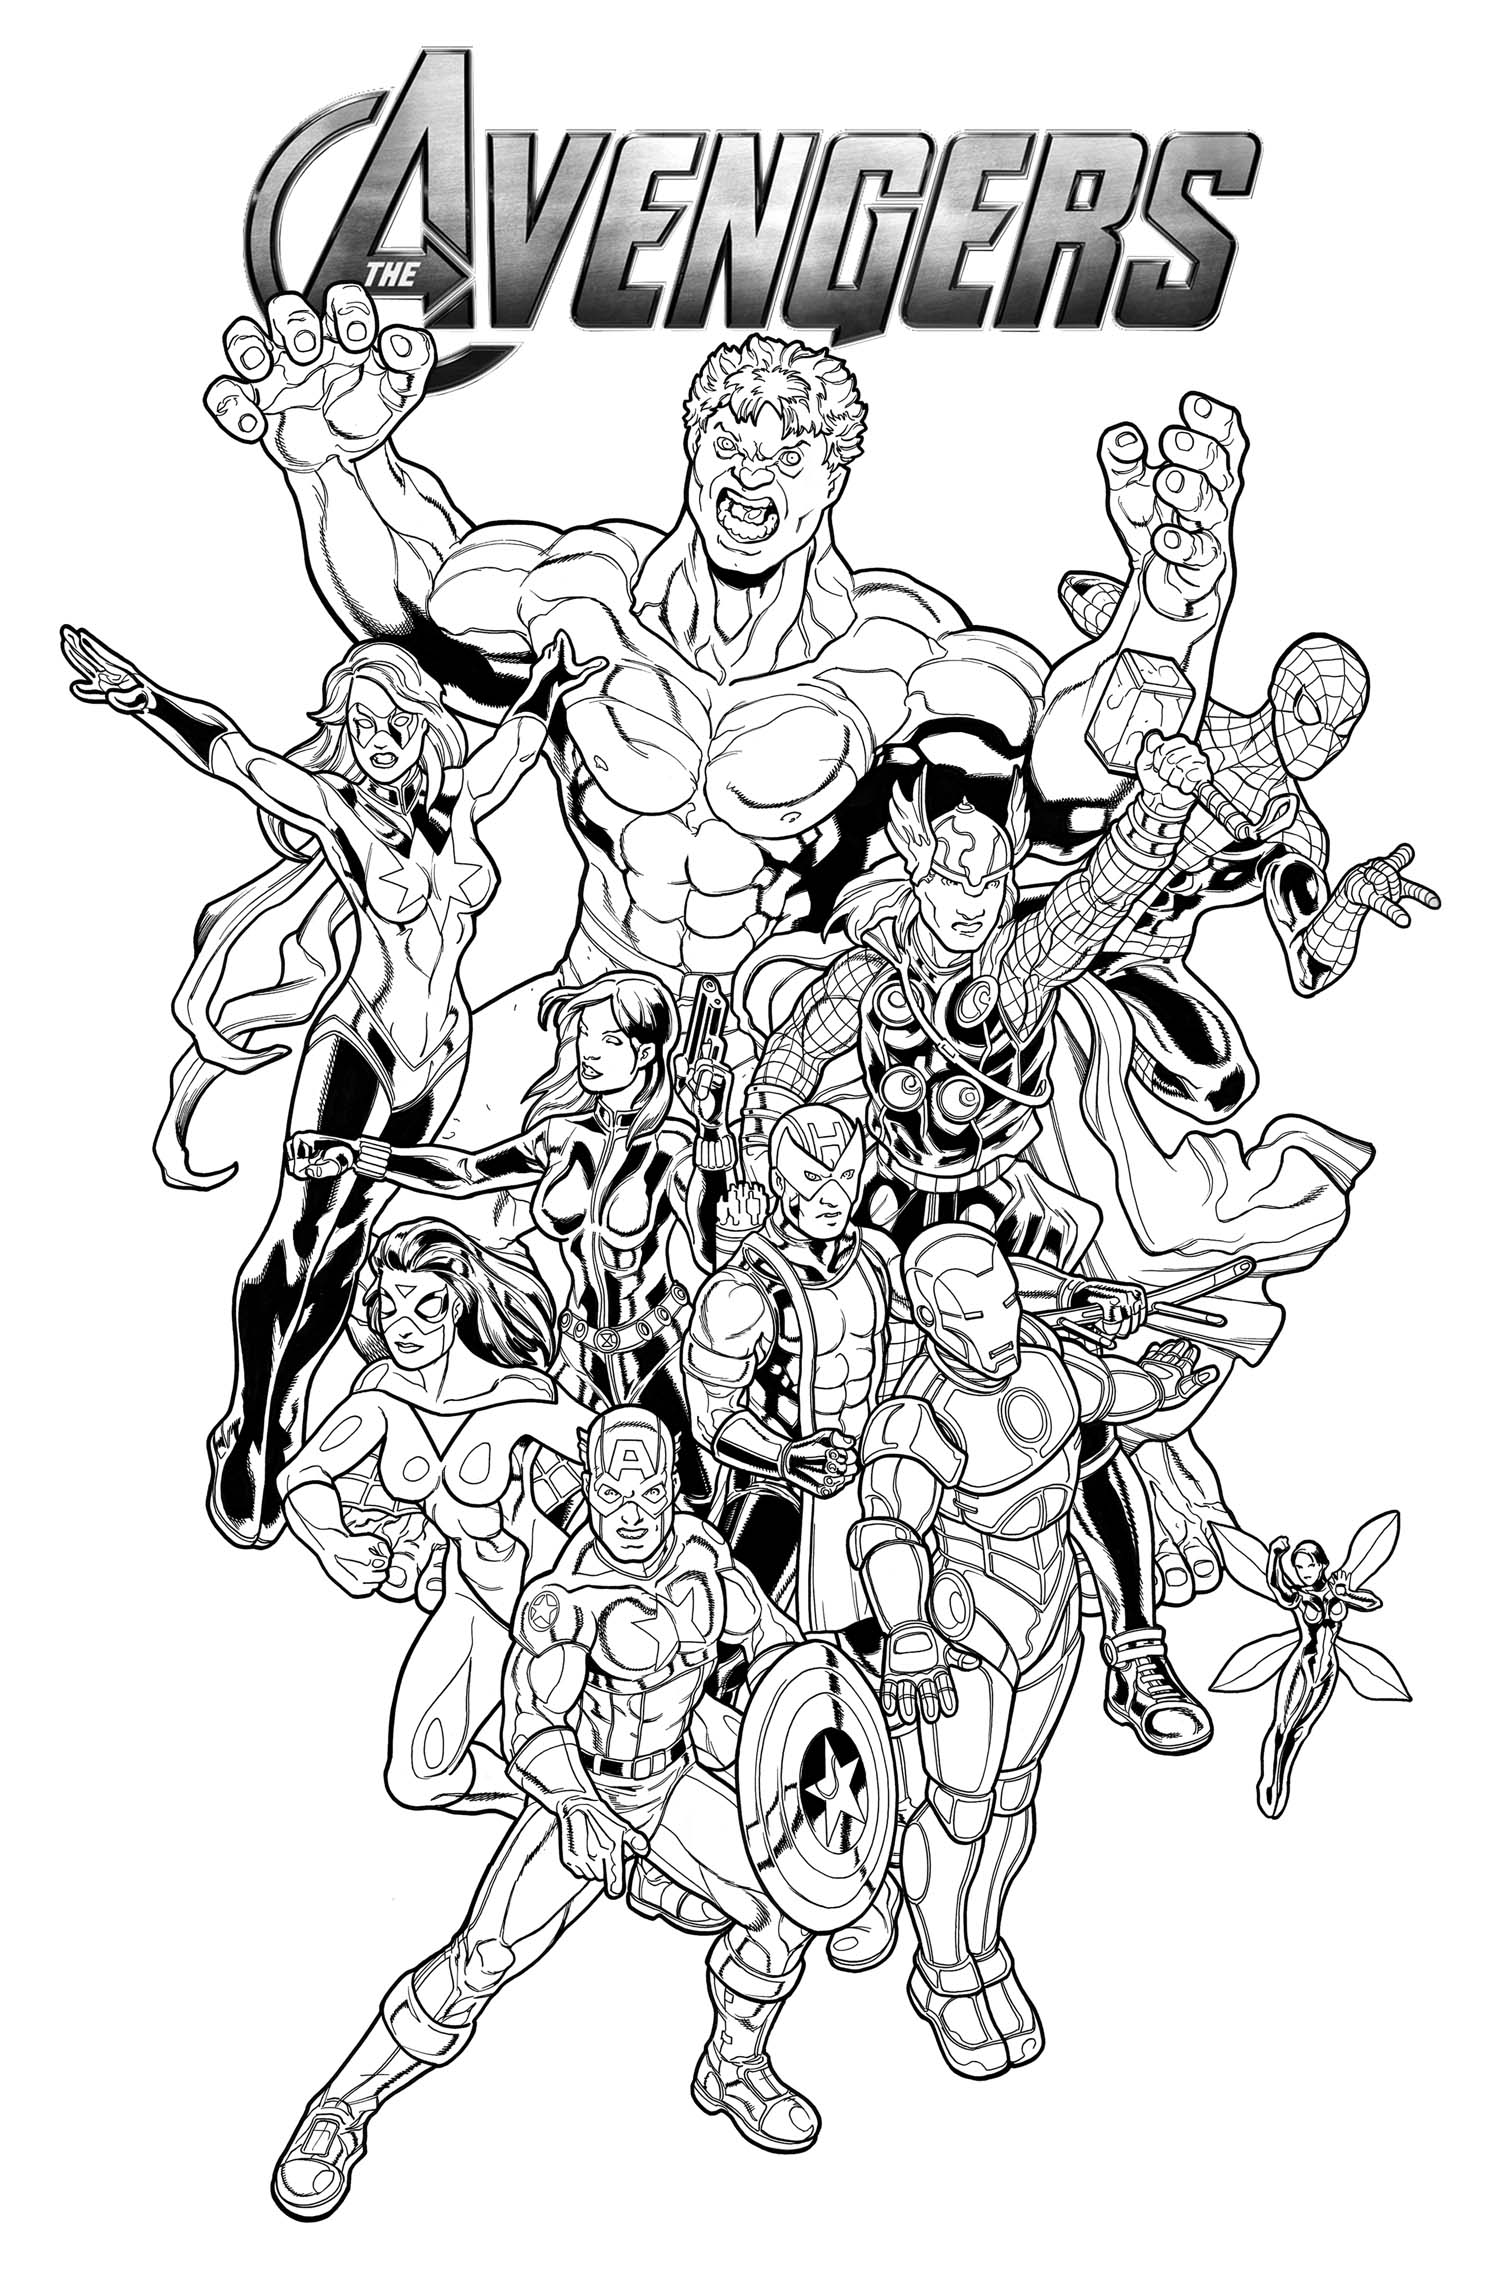 Free Marvel Coloring Pages at GetDrawings.com | Free for ...